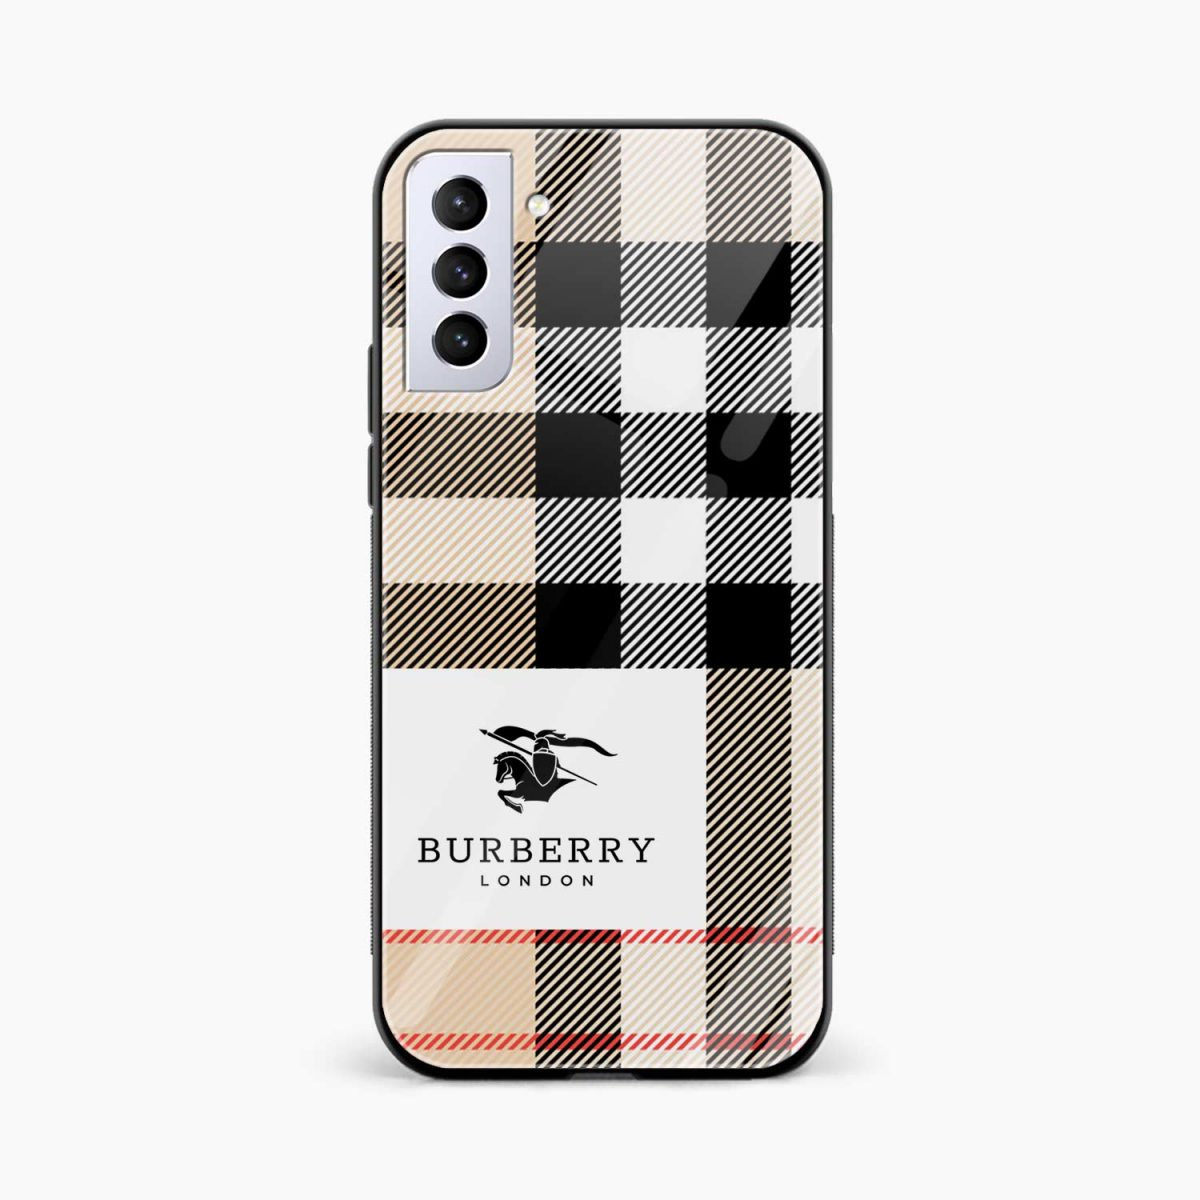 burberry cross lines front view samsung s21 plug back cover